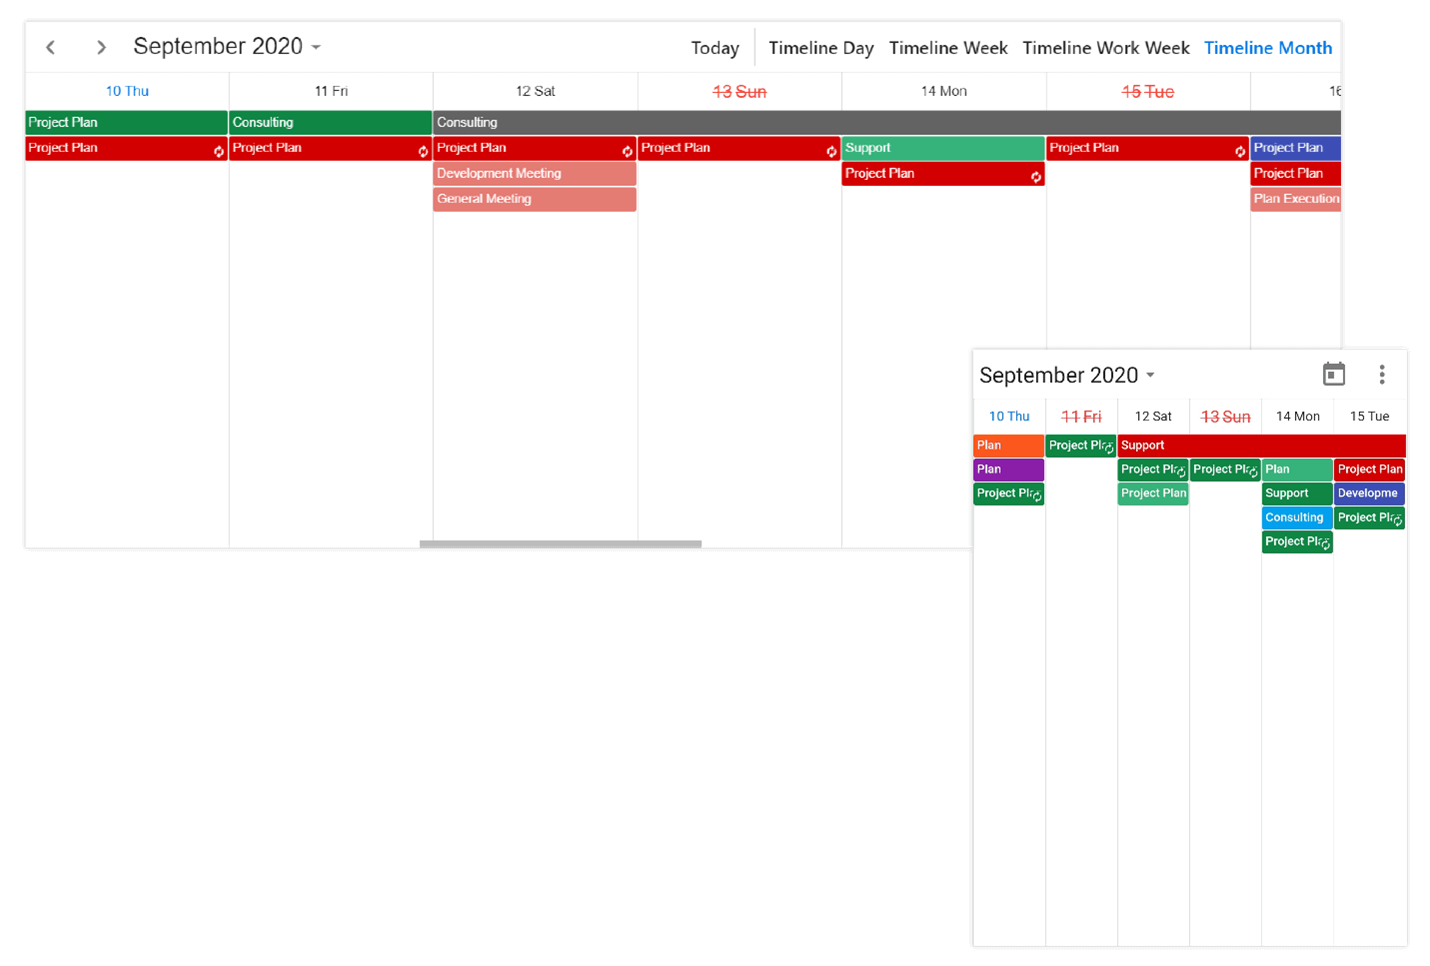 Timeline month view